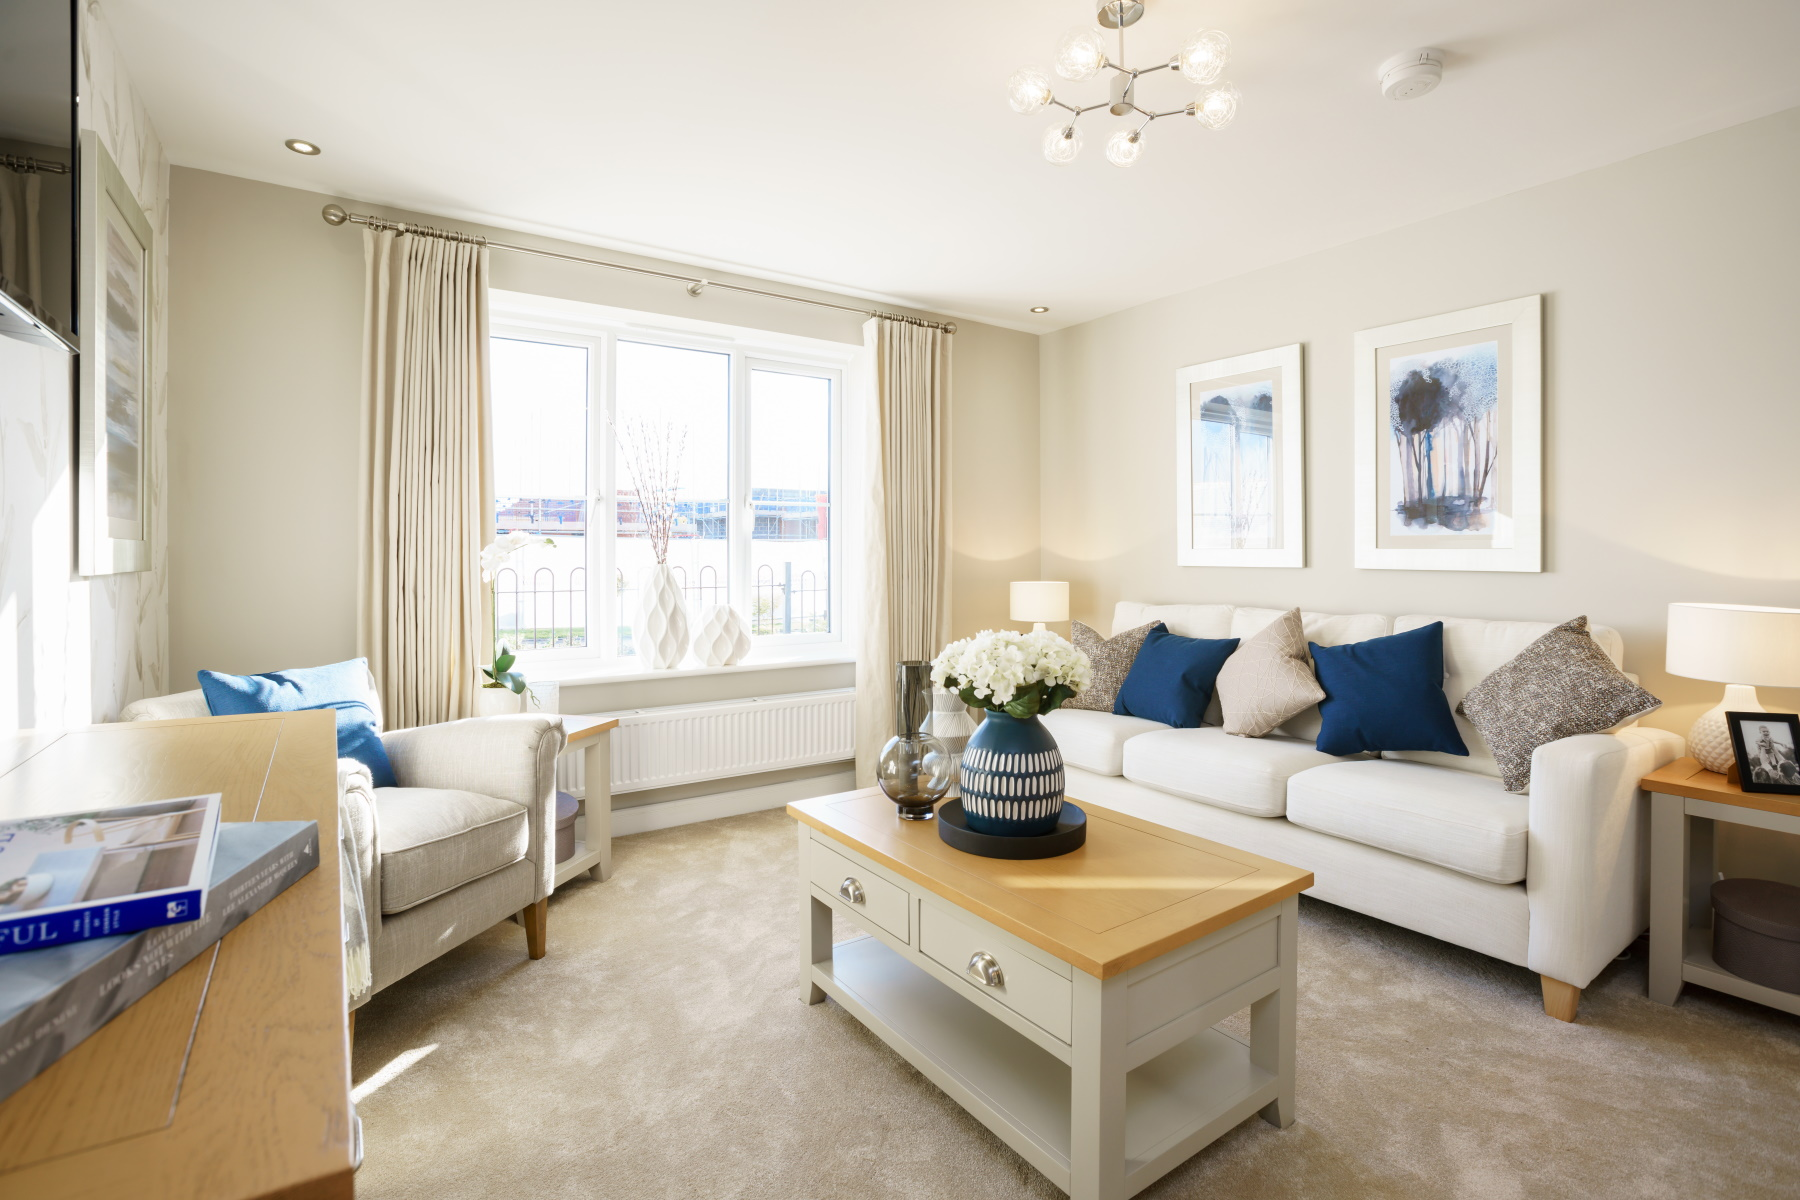 TW Exeter - Mayfield Gardens - Midford example living room 2